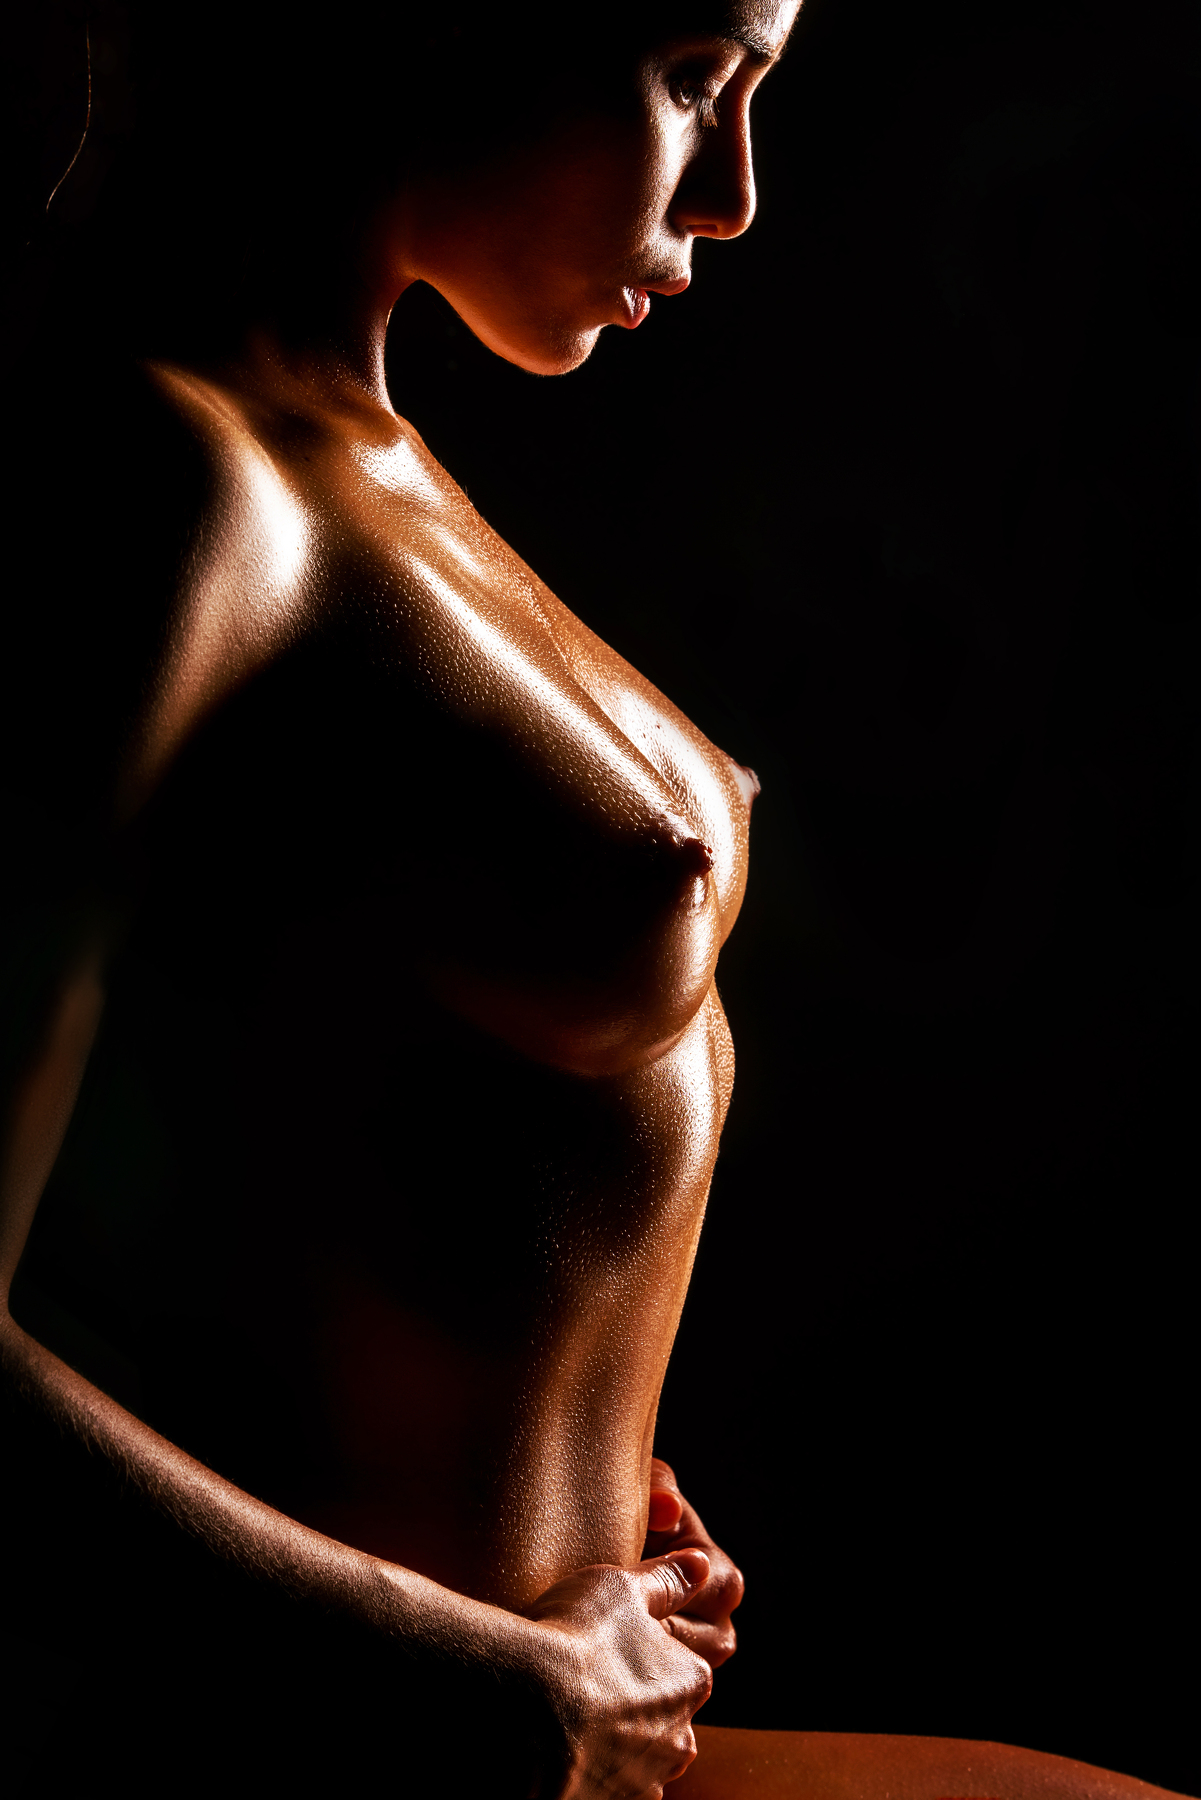 Dark nude portrait